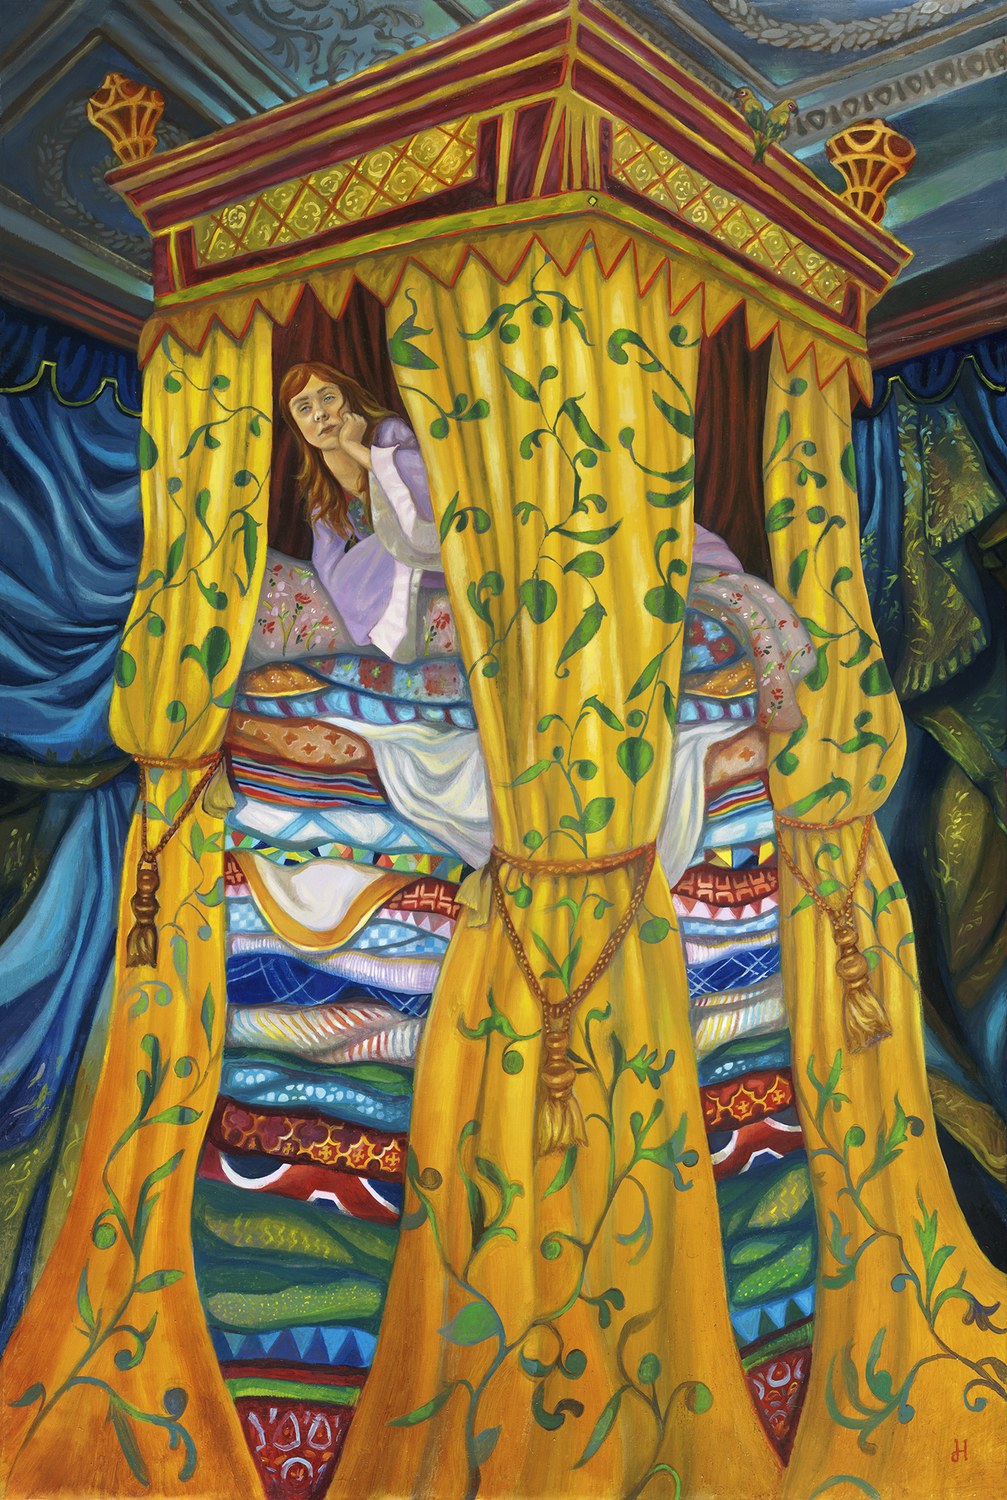 Princess and the Pea Artwork by David Hoffrichter